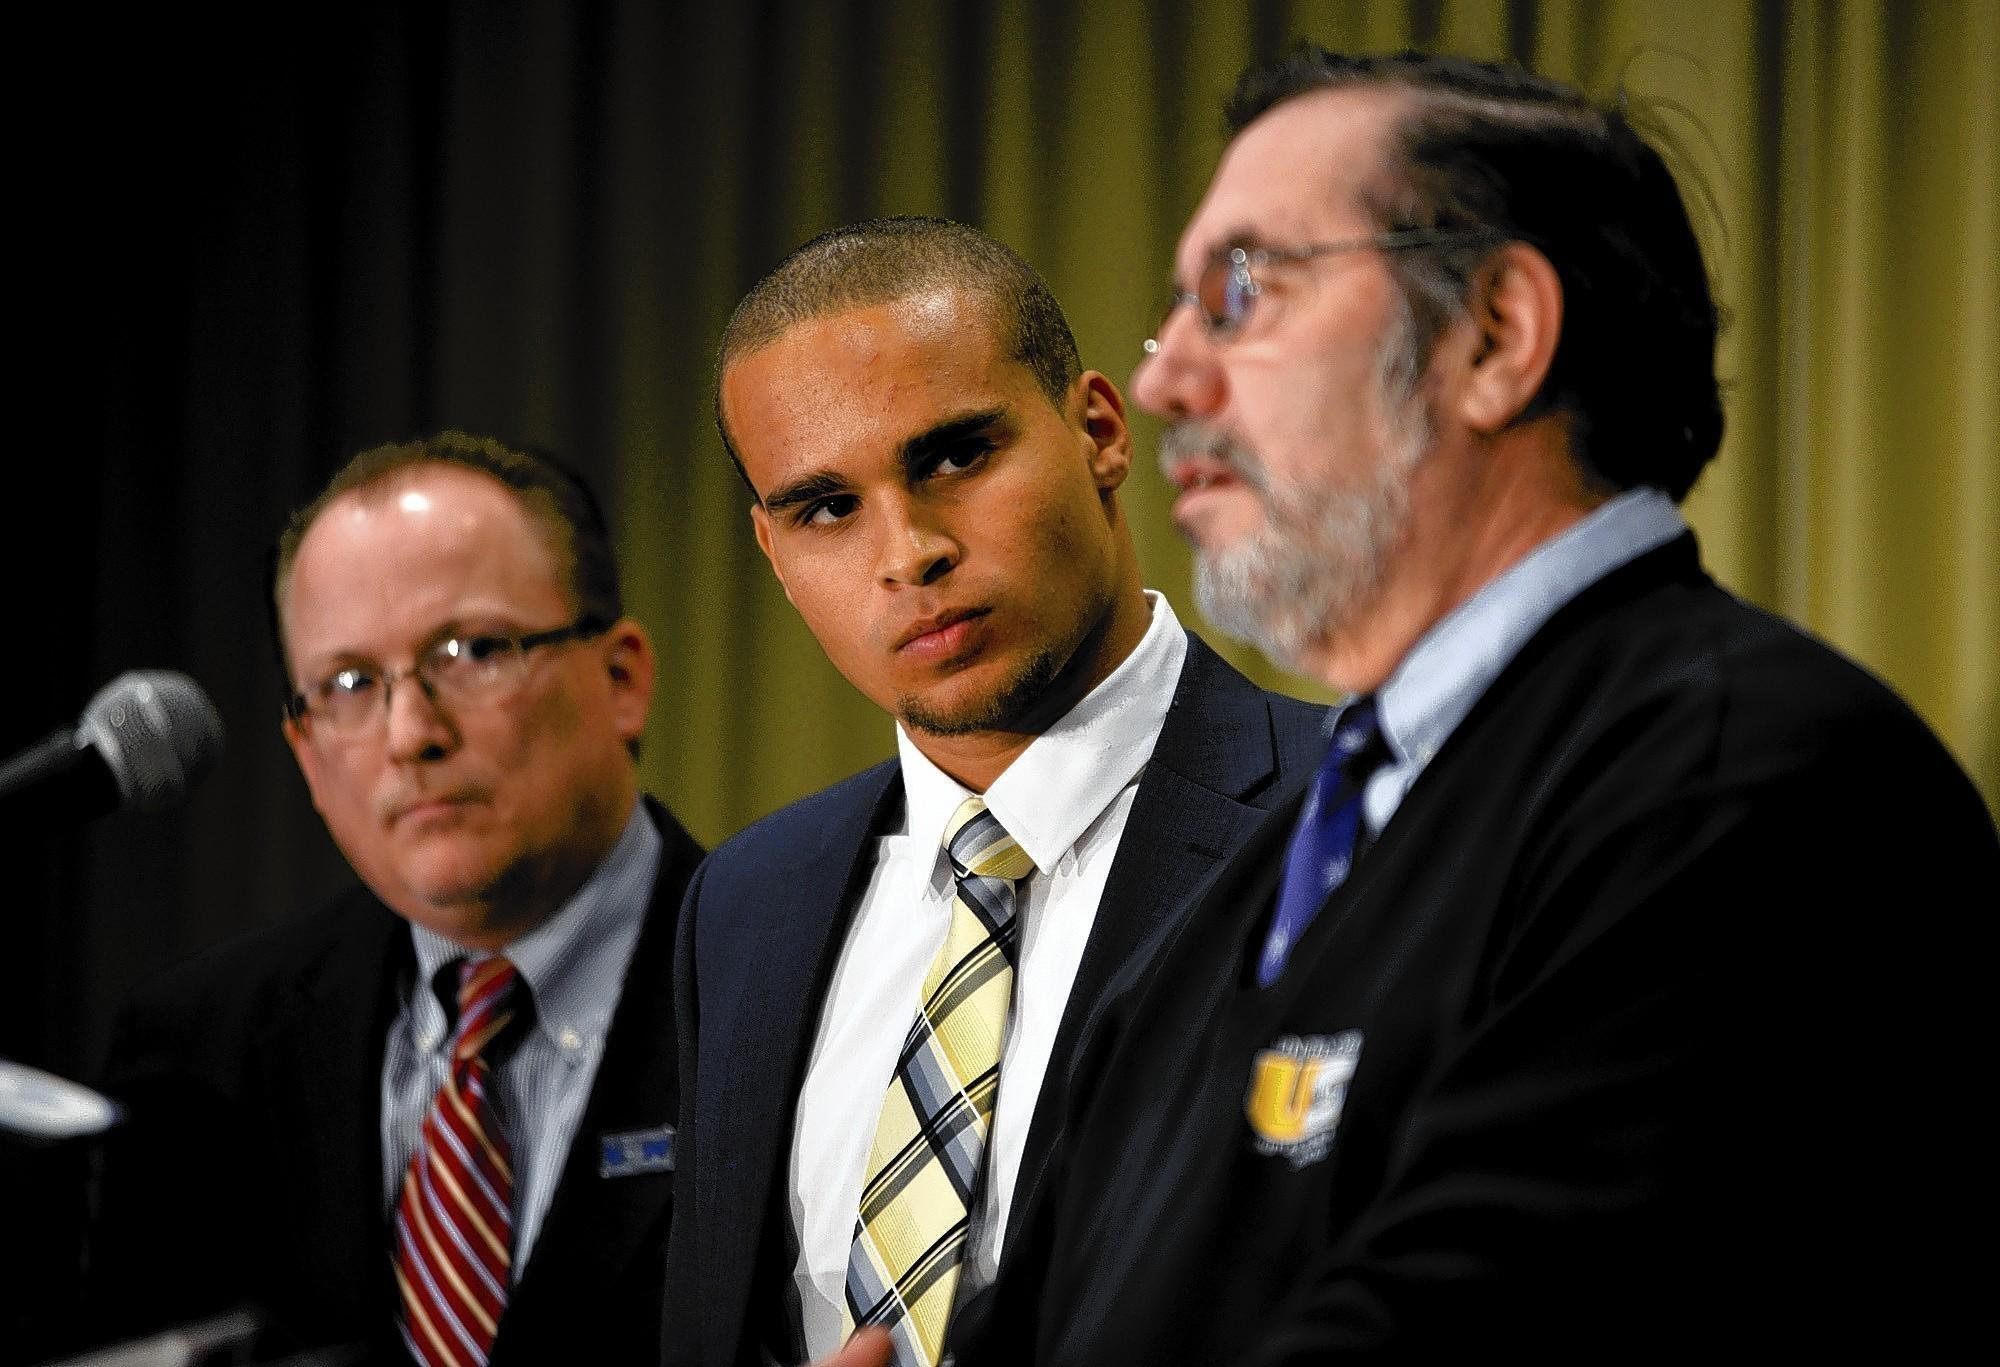 Former Northwestern University quarterback Kain Colter, center, announces plans for a football player union with United Steelworkers President Leo W. Gerard, right, and United Steelworkers national political director Tim Waters, left.